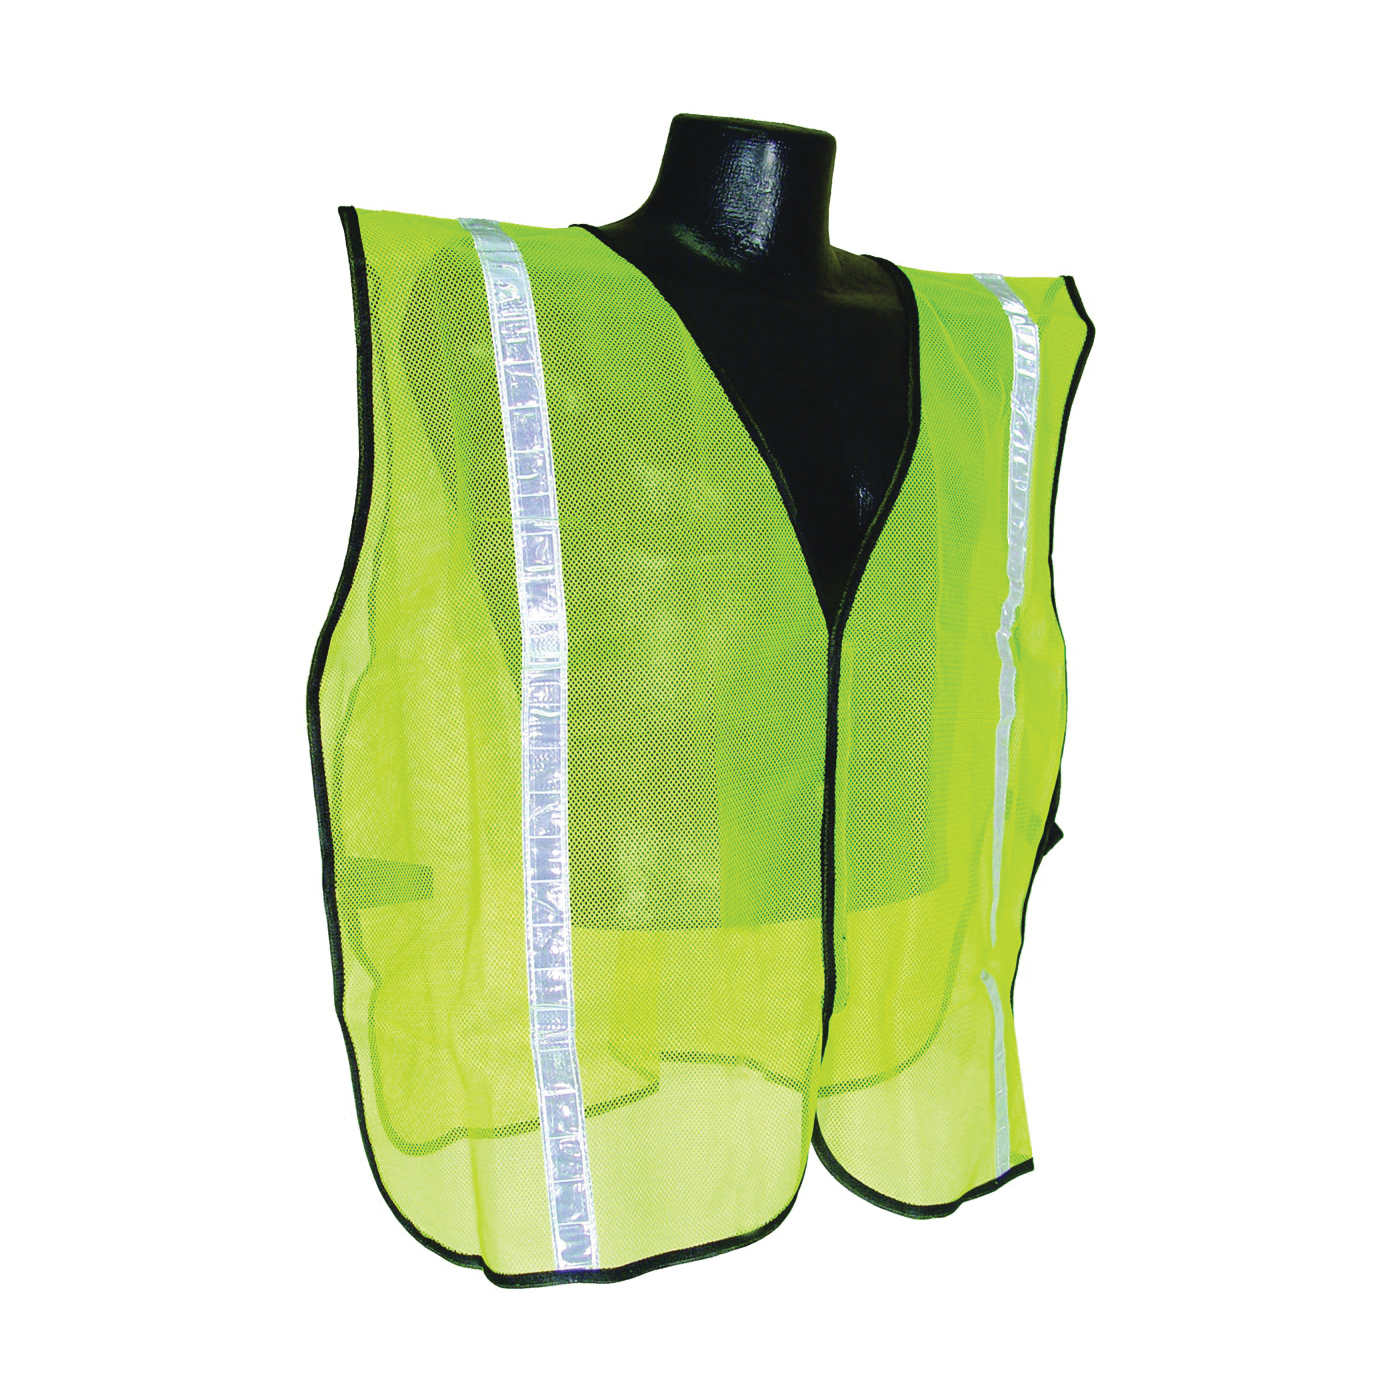 Picture of RADWEAR SVG1 Safety Vest, S/XL, Polyester, Green/Silver, Hook-and-Loop Closure